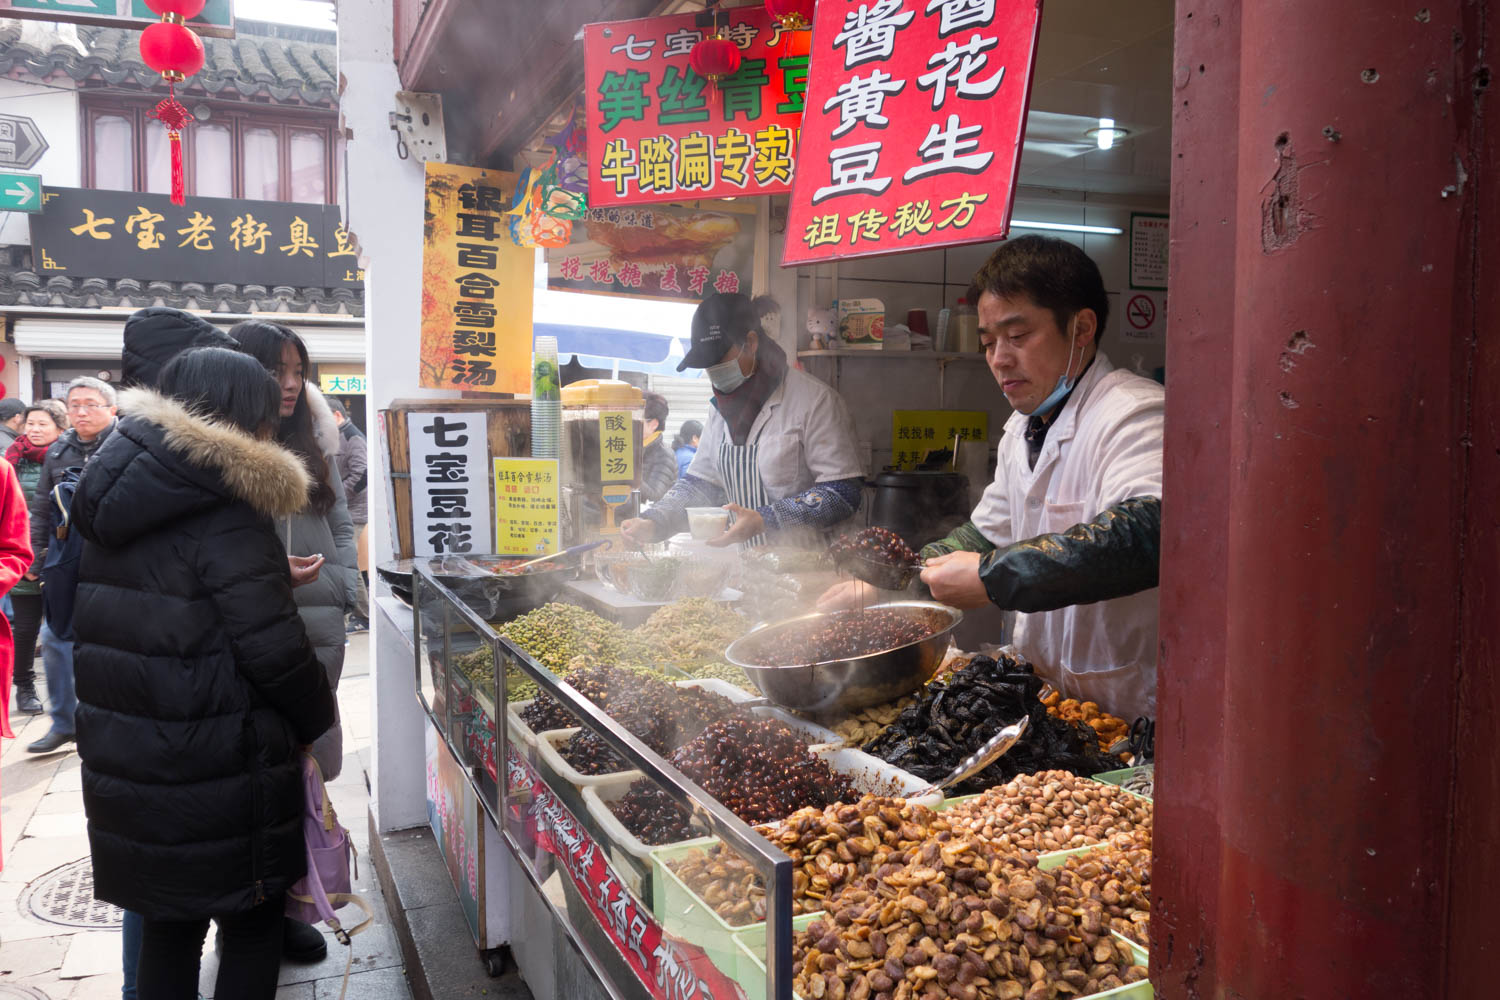 QIbao is known for its street food